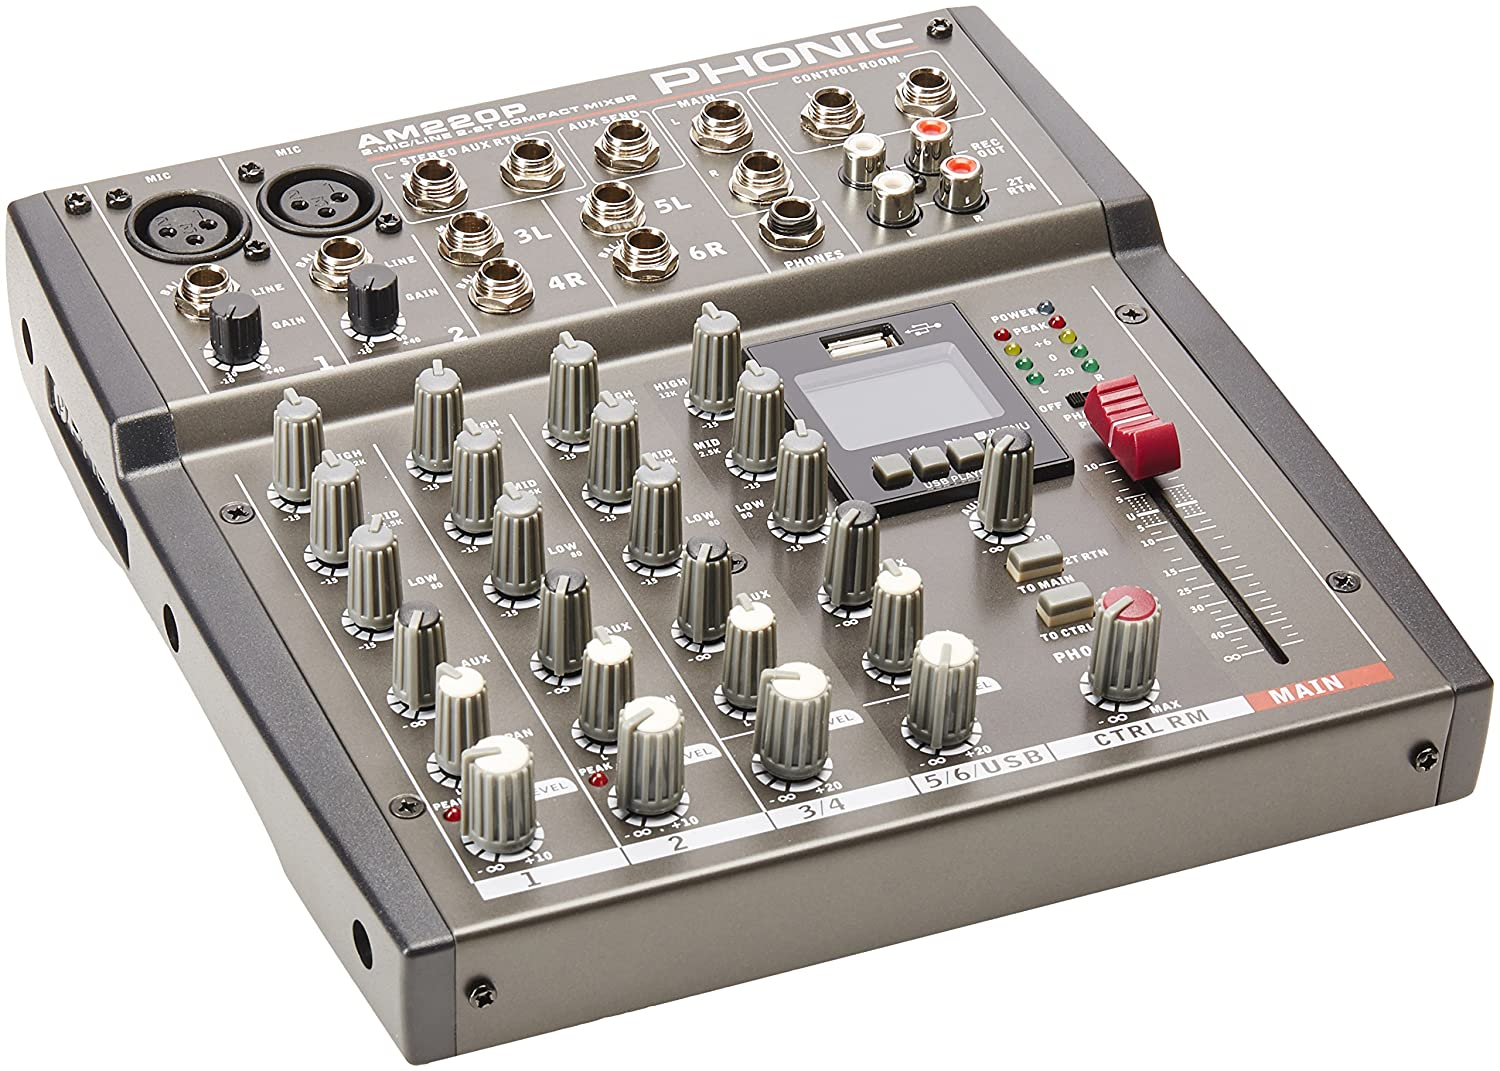 Phonic AM 220P 4channels 20 - 20000Hz - Audio Mixers (4 channels, 20 - 20000 Hz, 90 dB, 10 Ω, 2 Ω, 0.005%) 10 Ω 2 Ω AM 220 P